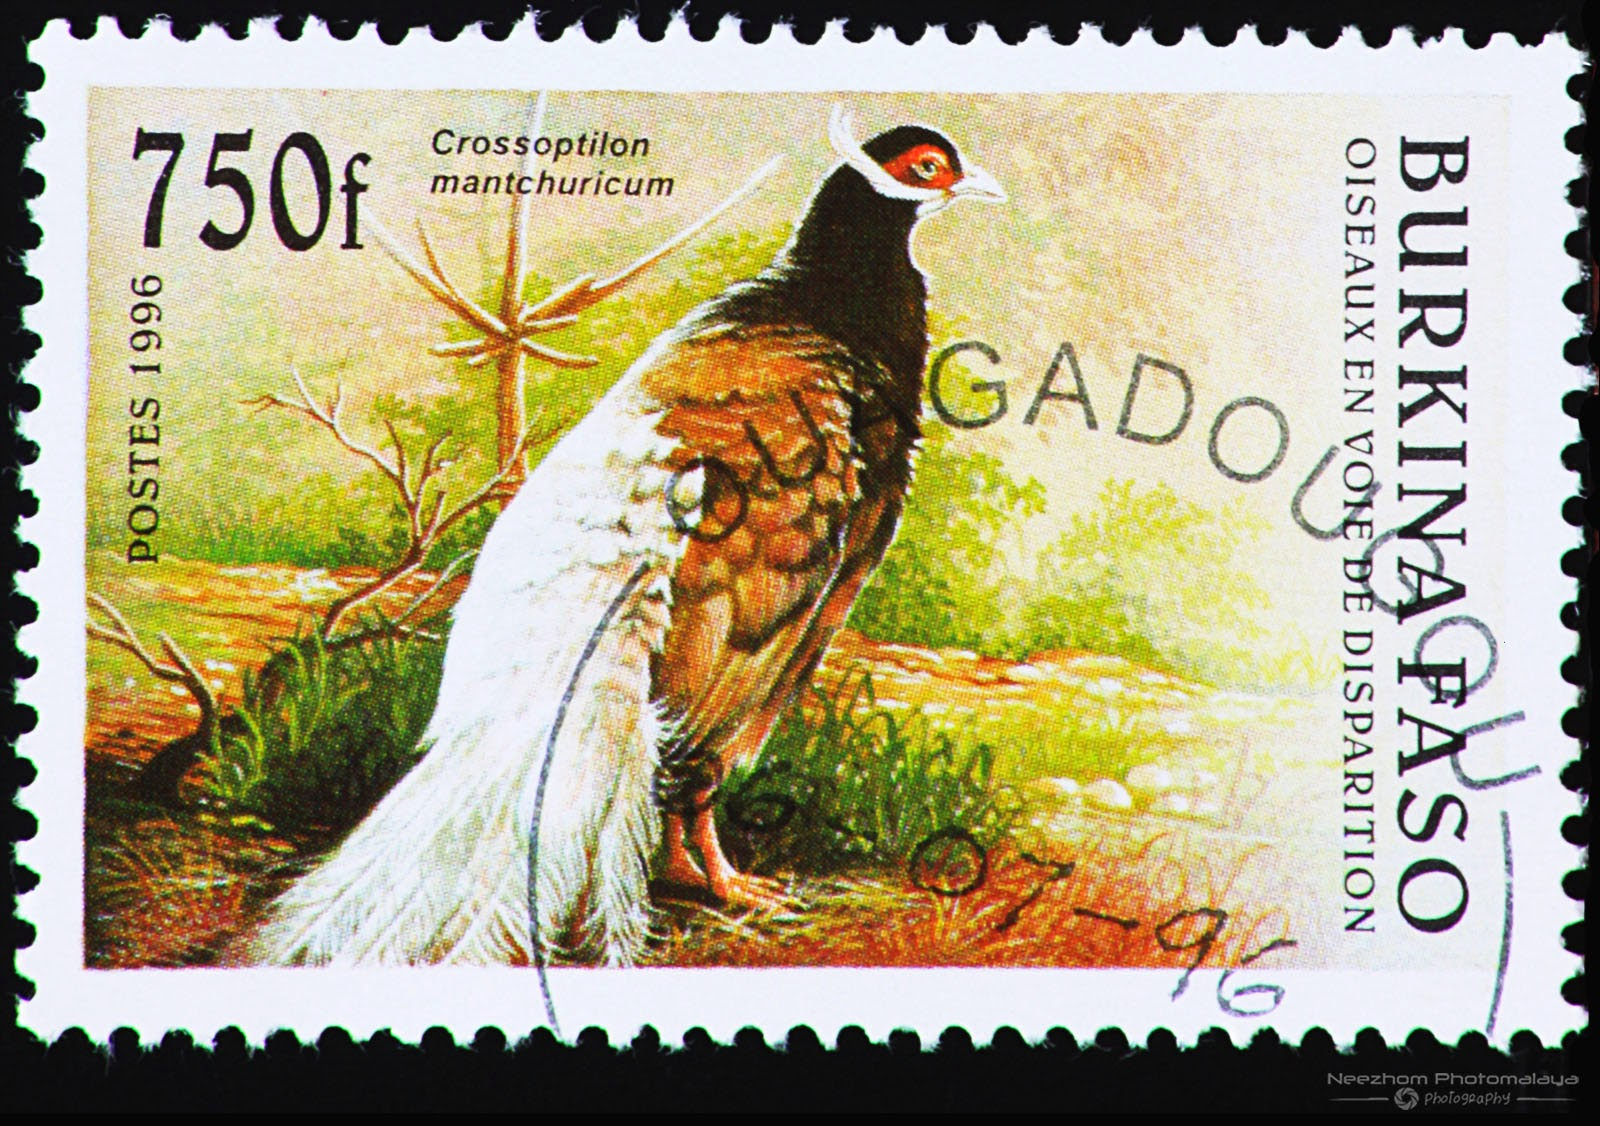 Burkina Faso 1996 Endangered Birds stamp - Brown Eared Pheasant (Crossoptilon mantchuricum) 750 f